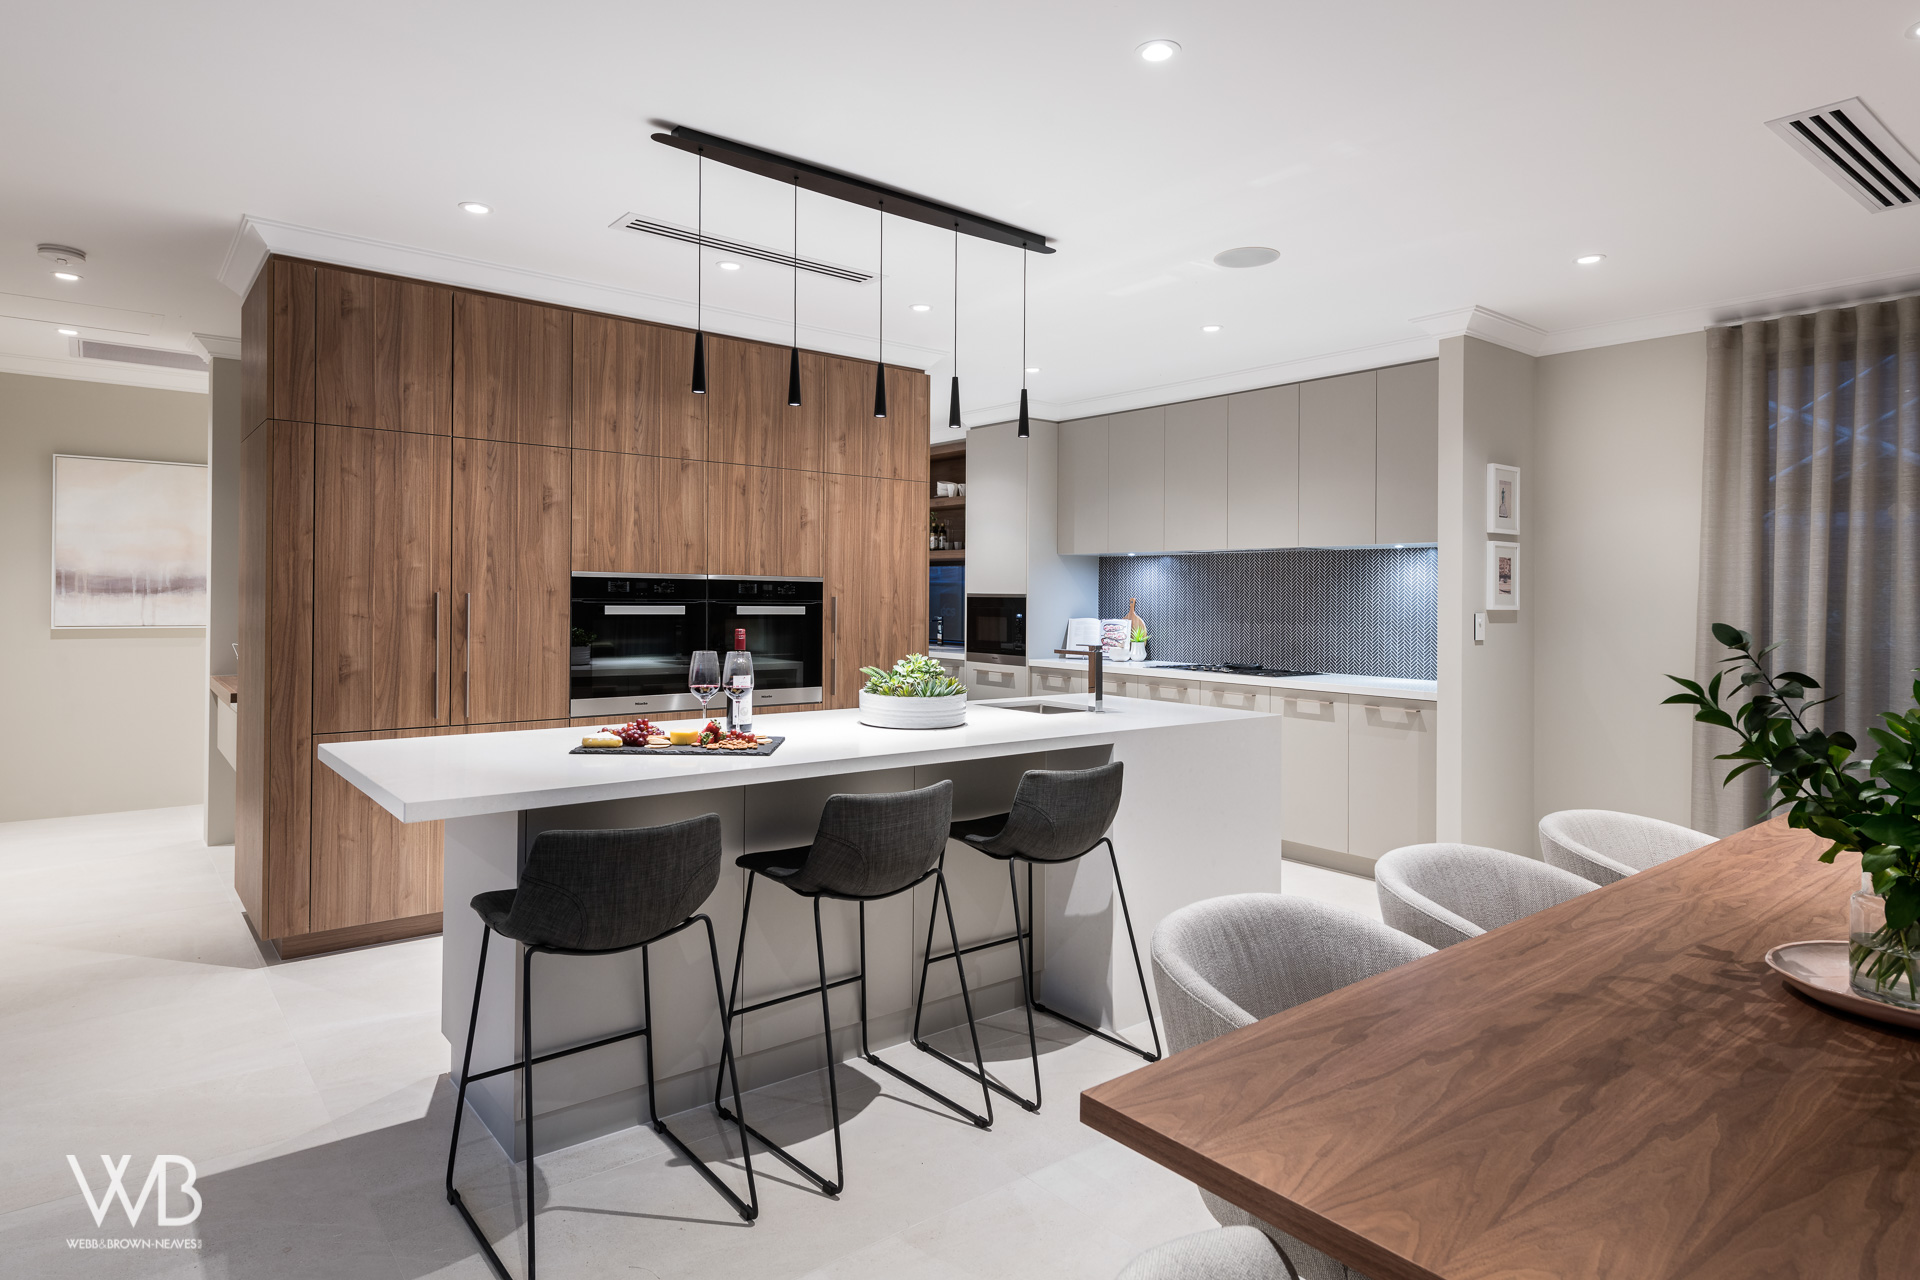 Kitchen designed by Jess O'Shea Designs for Webb and Brown-Neaves. Moda Display home. Made by The Maker Designer Kitchens. Dianella, Perth, Western Australia